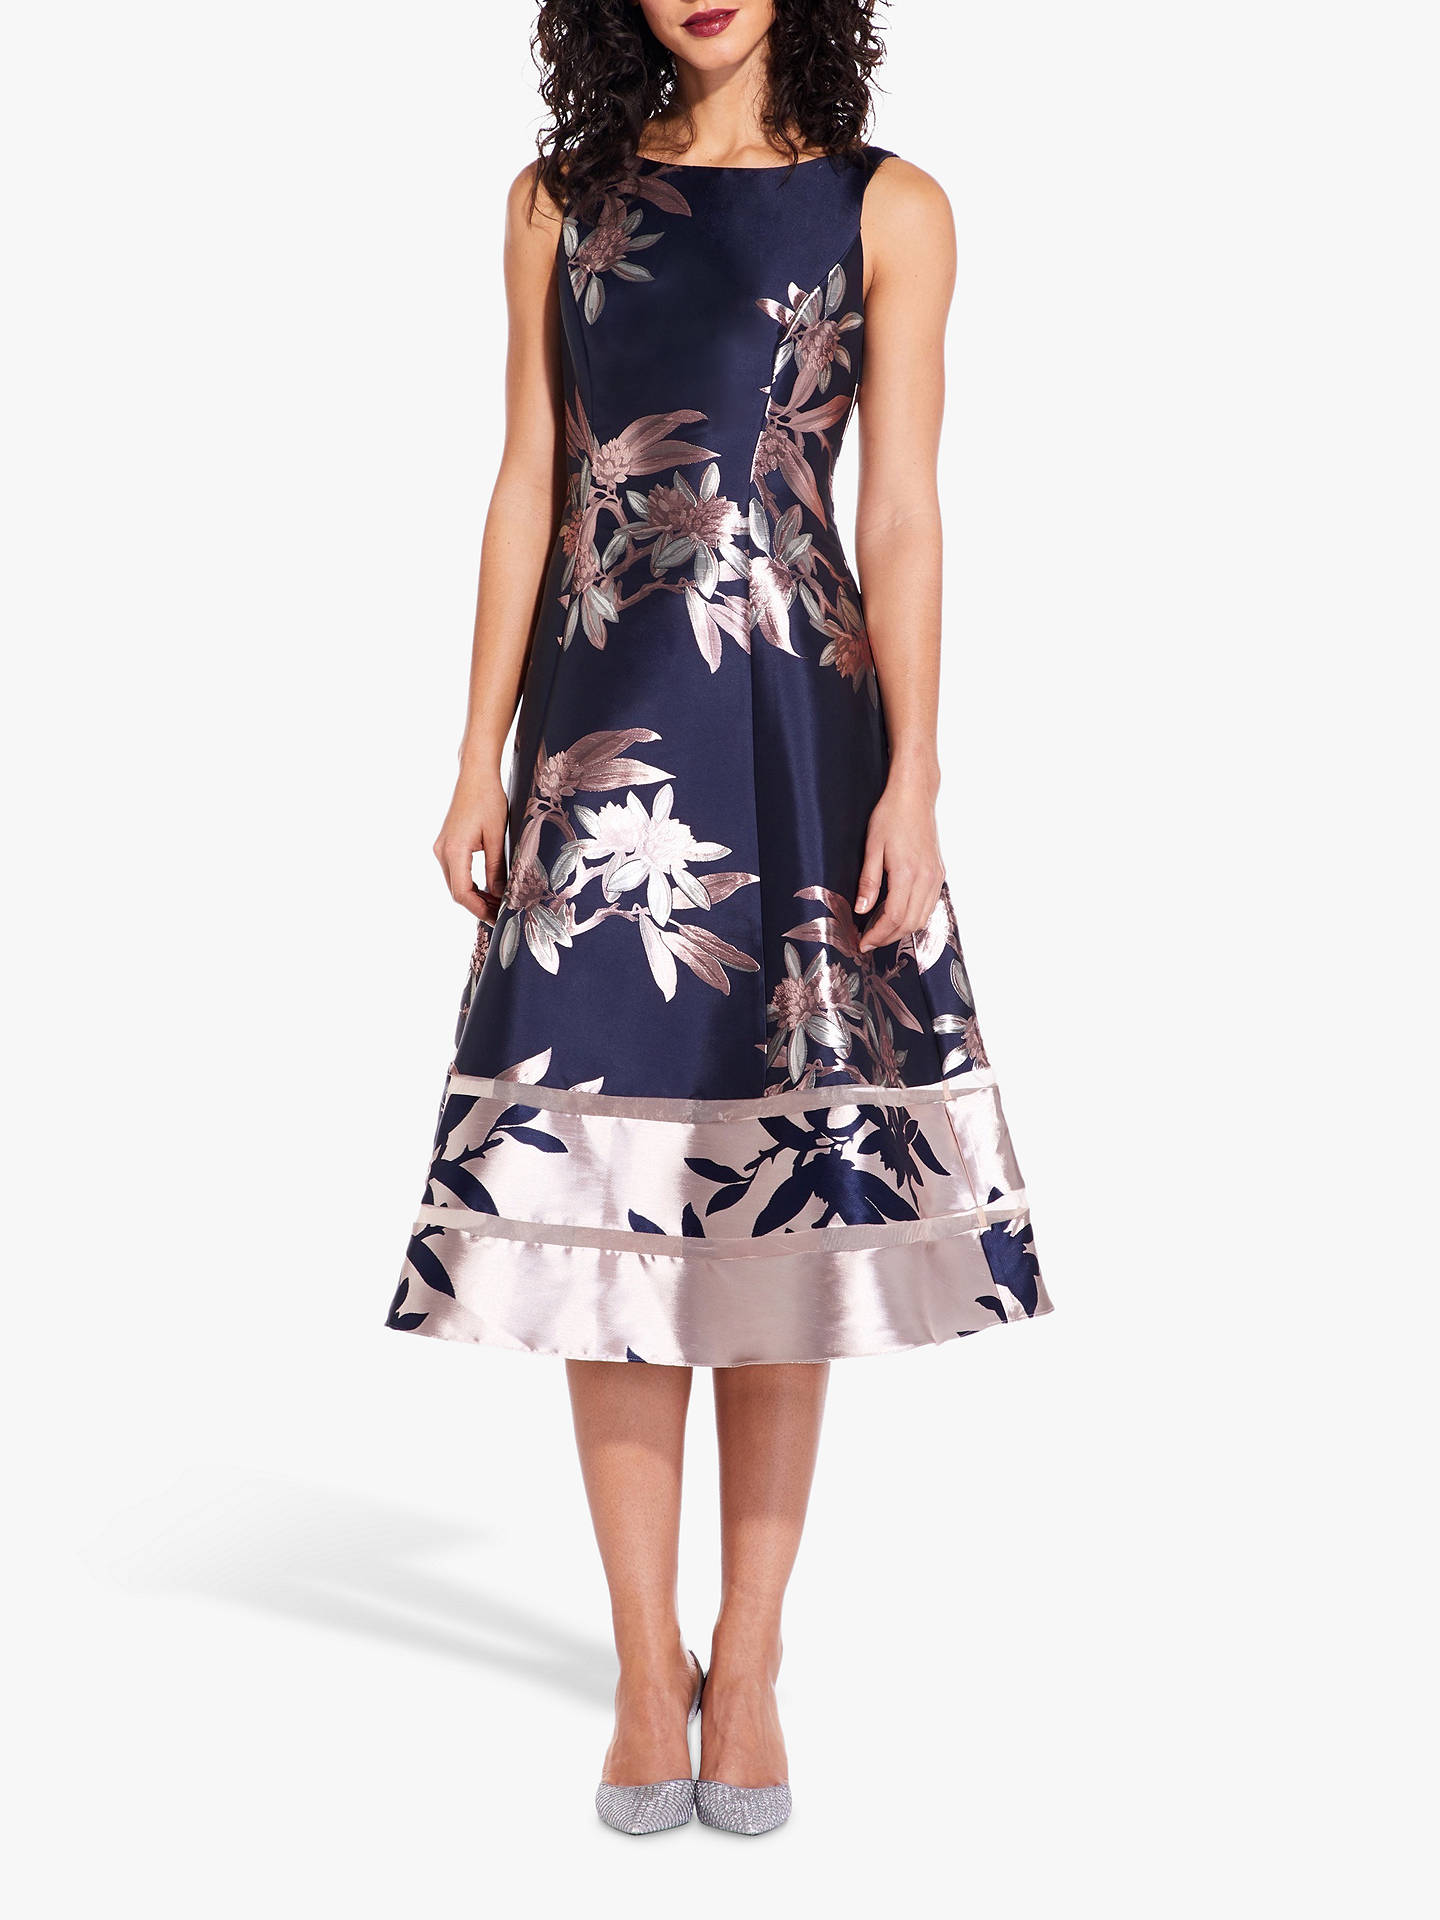 c43ed55bb31 Buy Adrianna Papell Floral Jacquard Dress